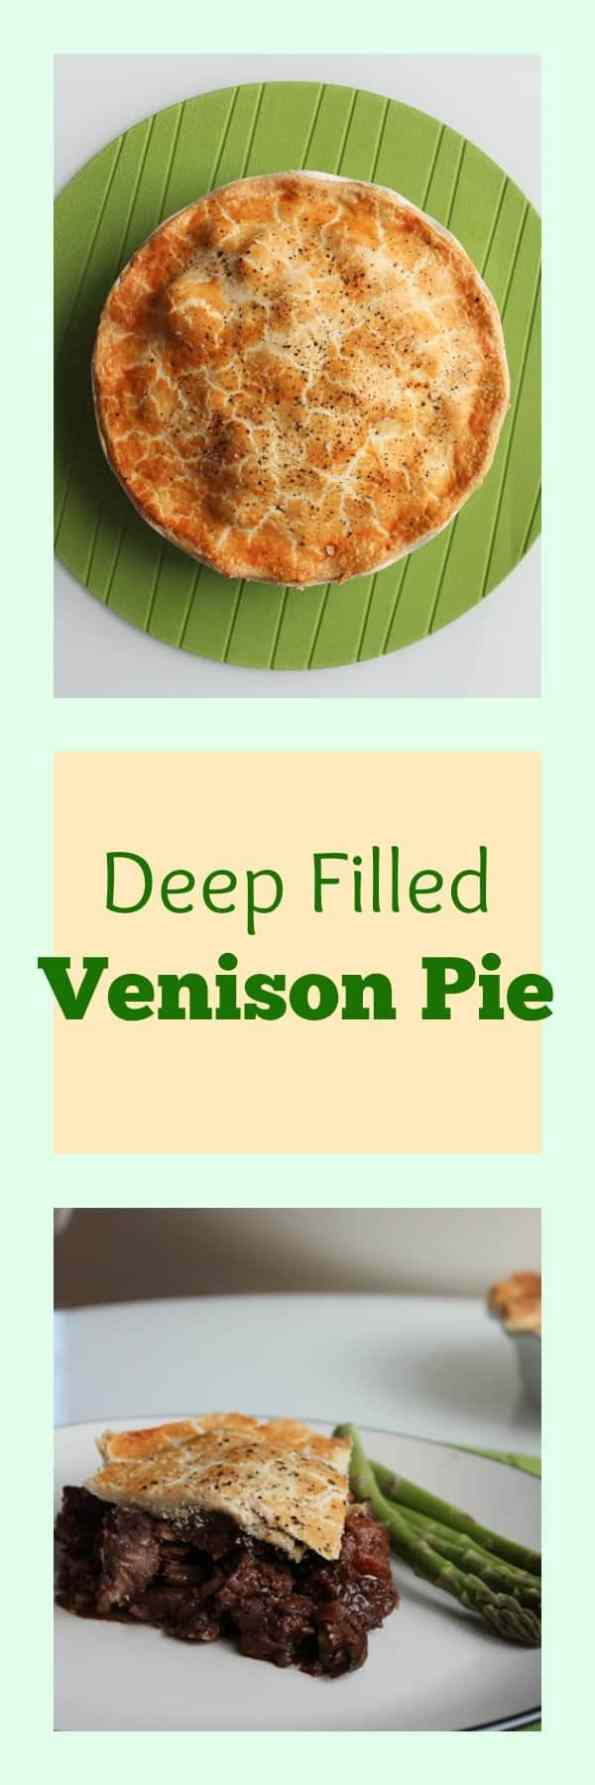 Deep Filled Venison Pie with Cherry